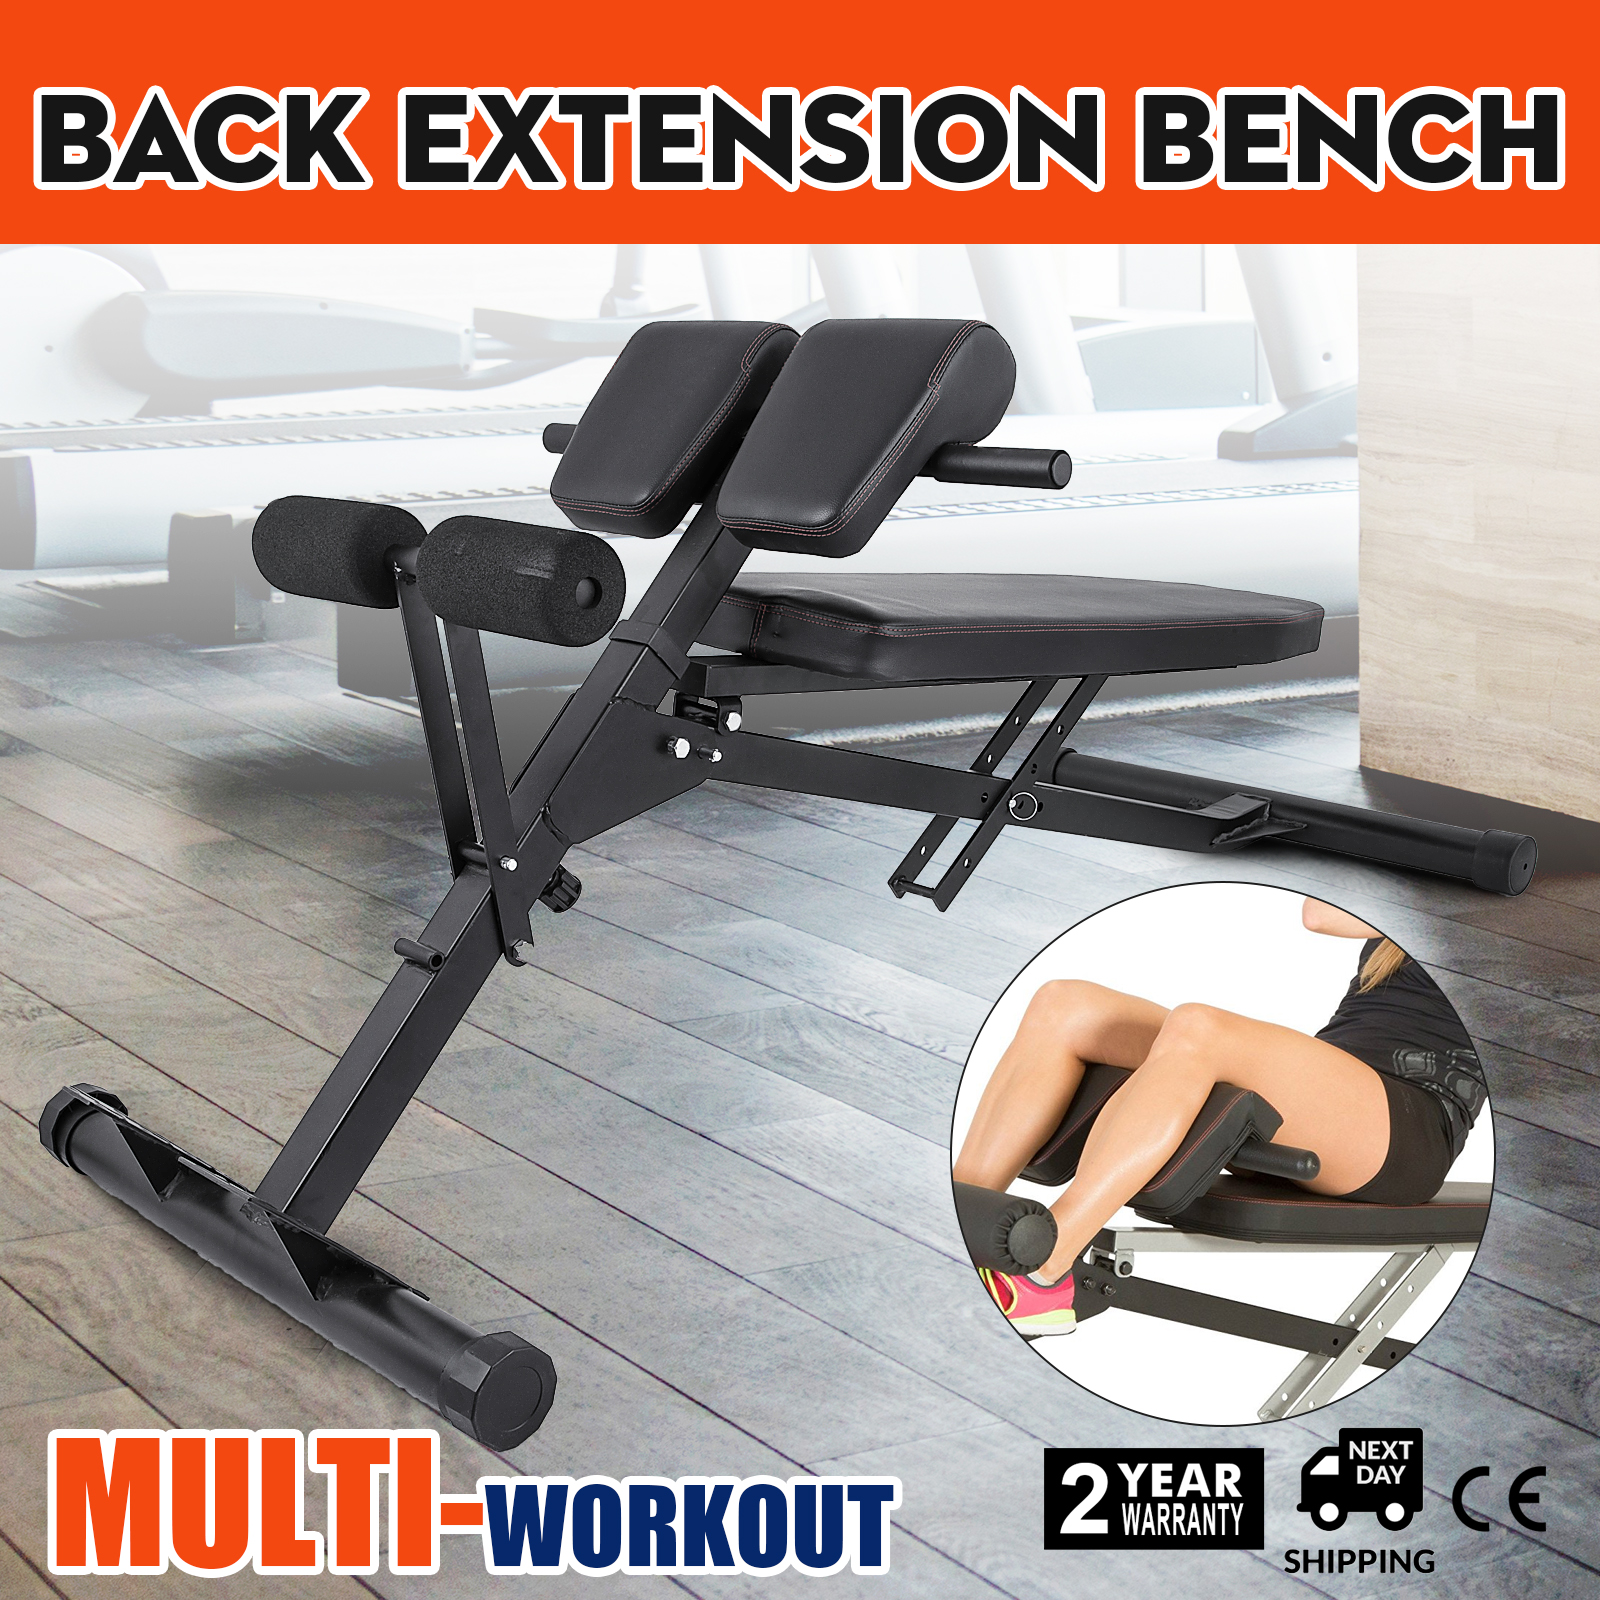 Roman chair fitness hyper extension sit up crunches back training